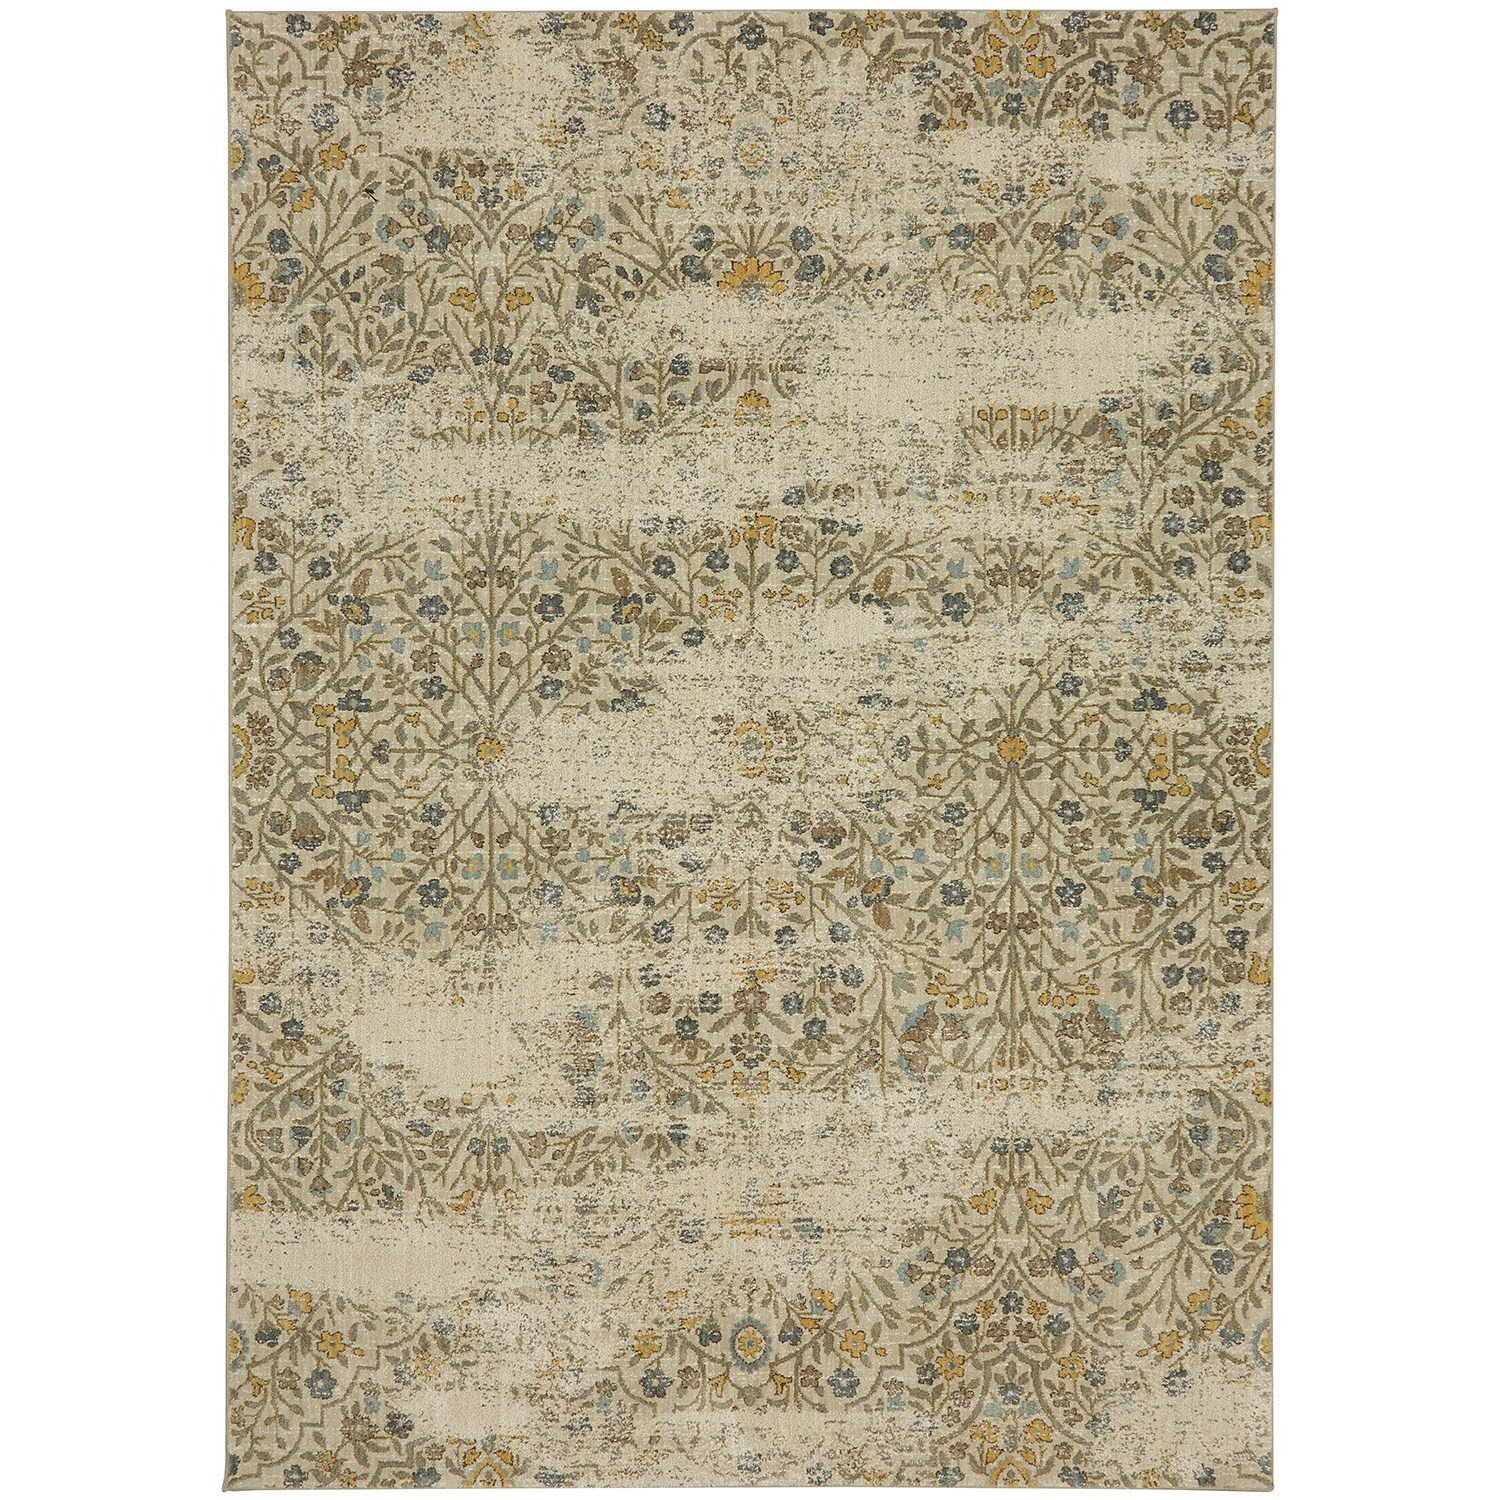 "5' 3""x7' 10"" Rectangle Floral Area Rug"